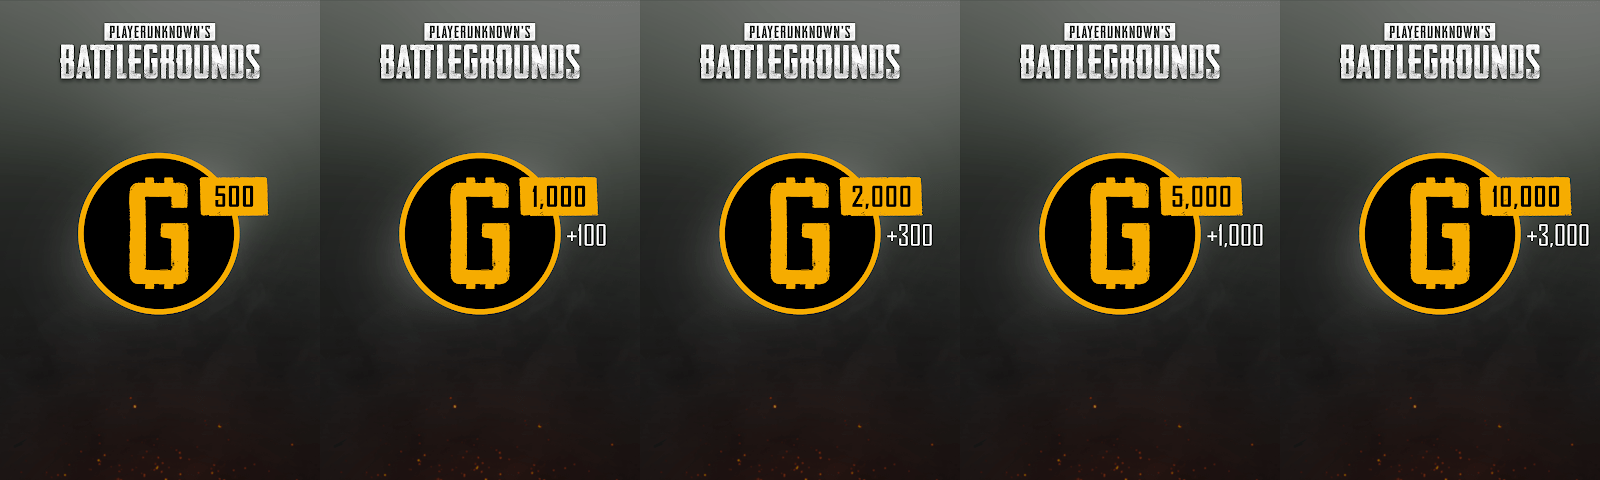 PlayerUnknown's Battlegrounds (PUBG) G-Coin & Crate System detailed OnMSFT.com August 30, 2018